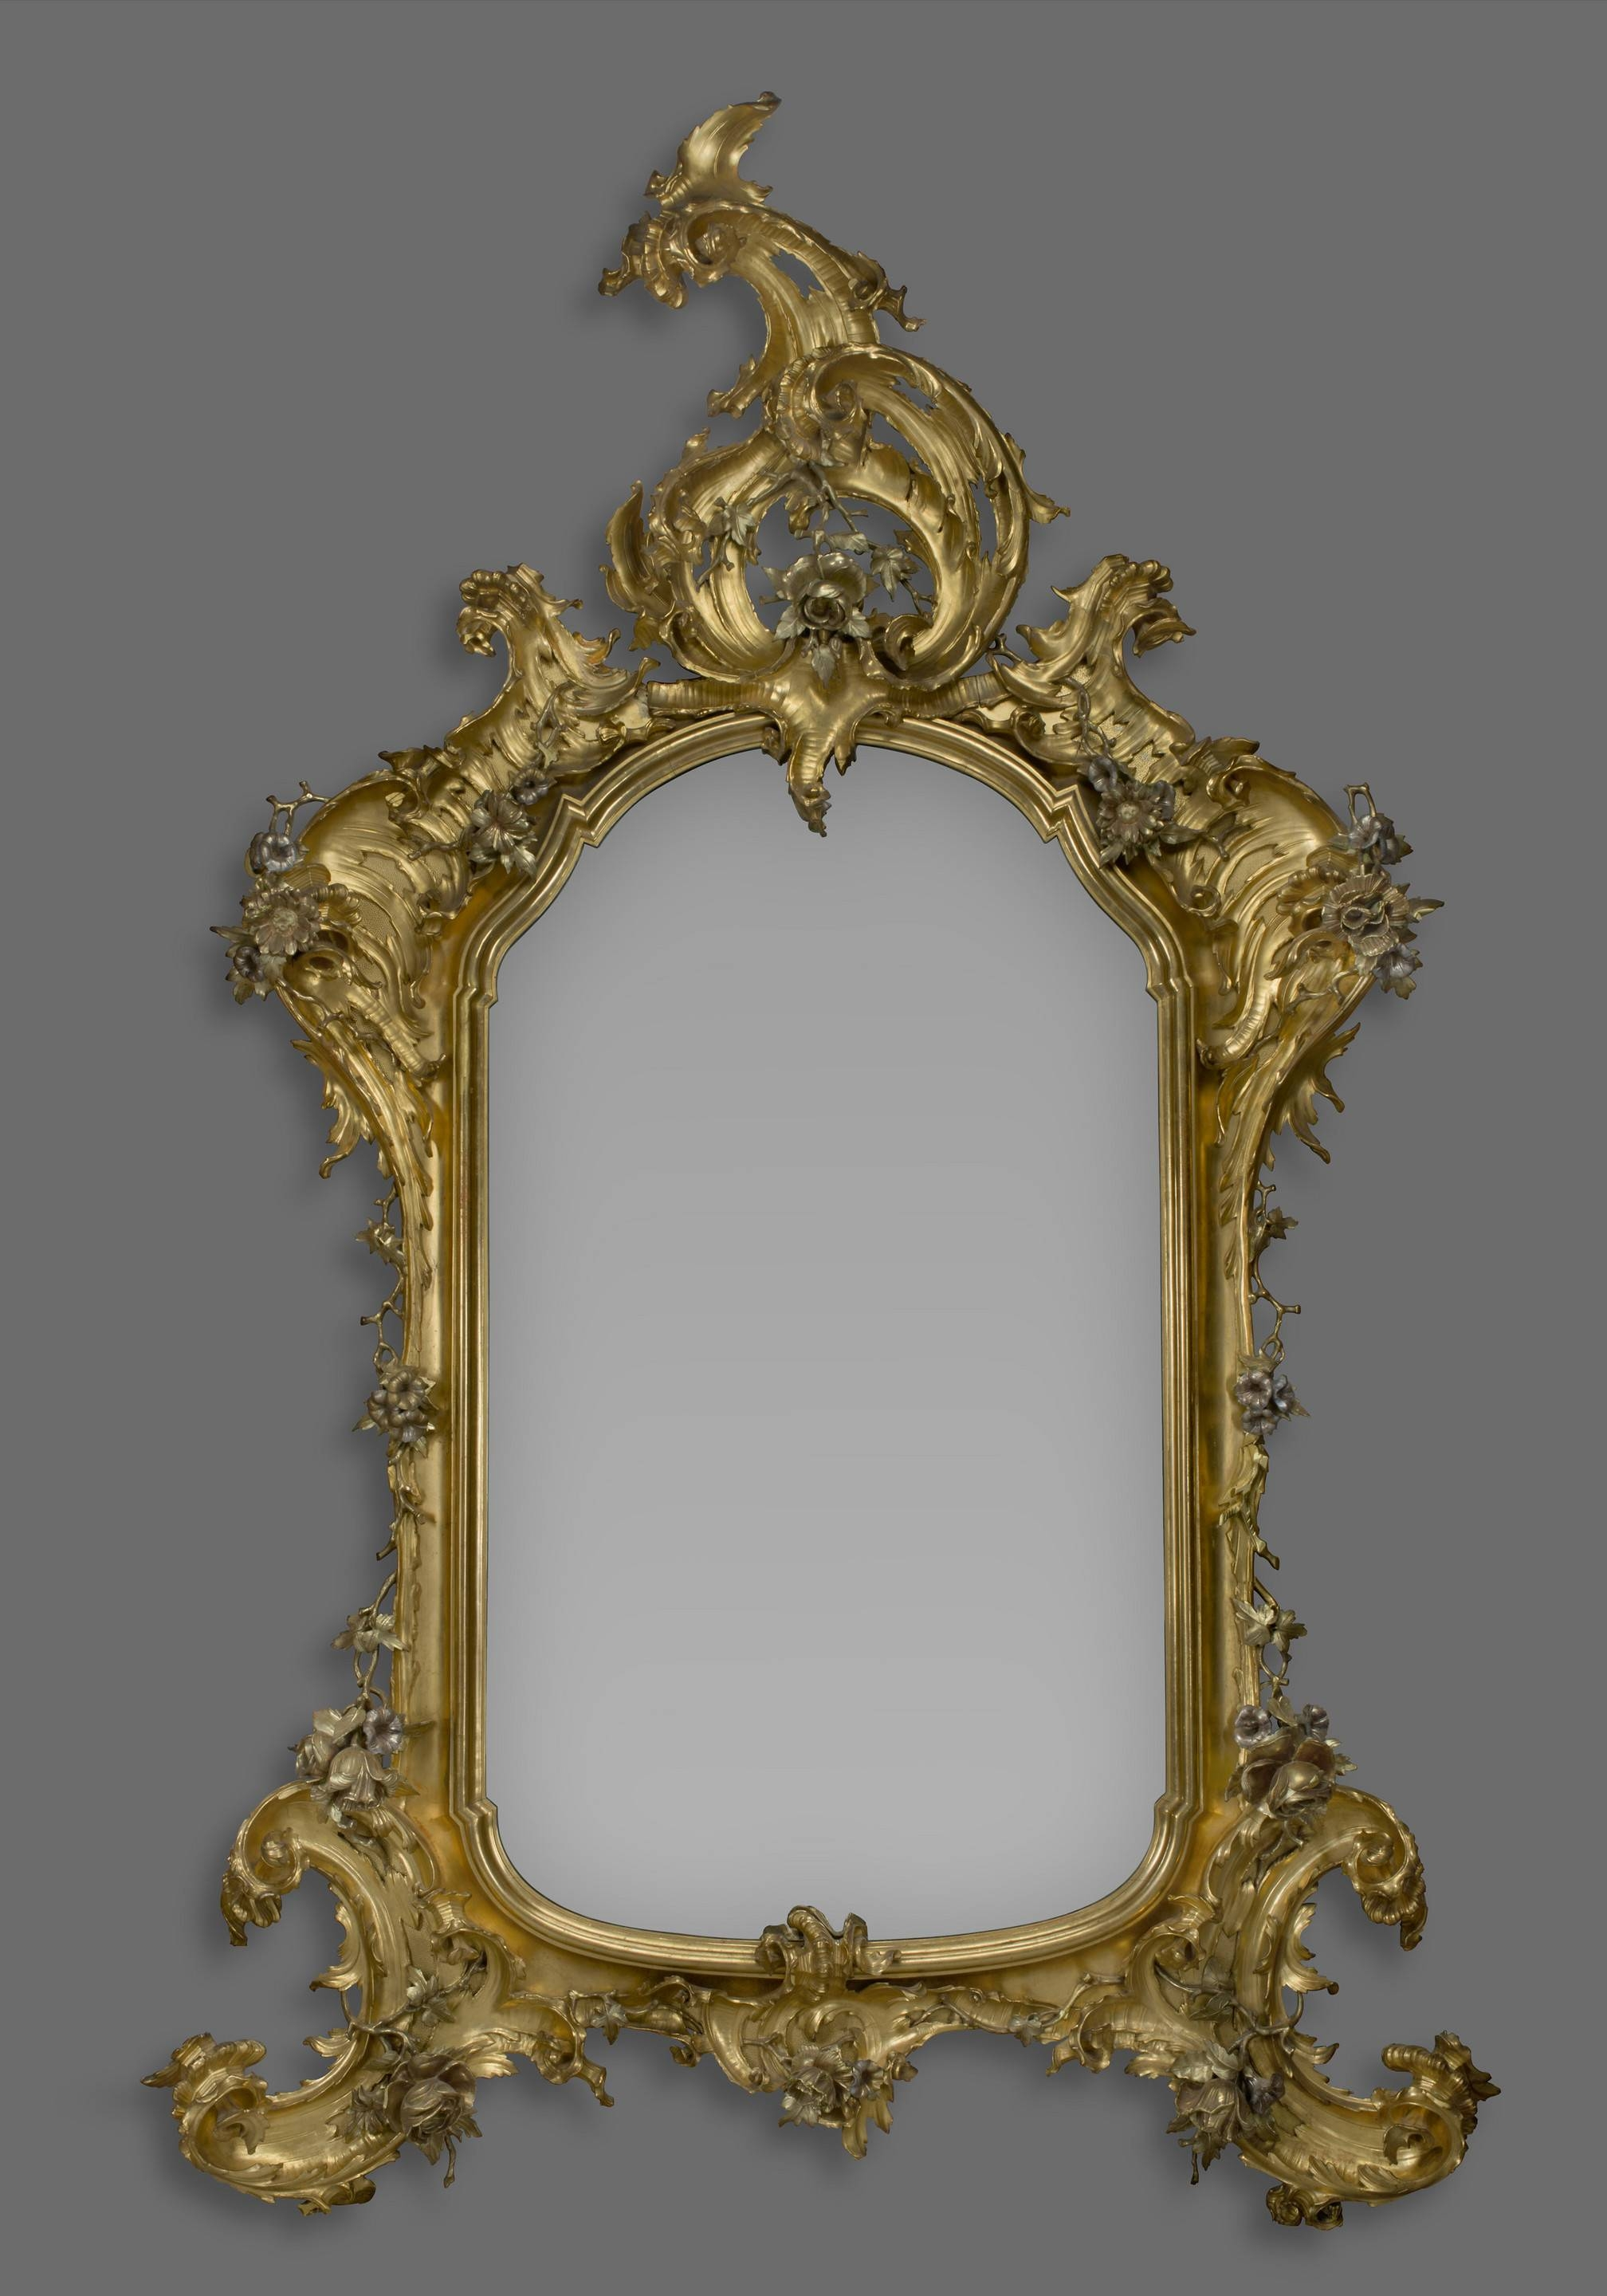 A Large Rococo Style Carved Giltwood And Silver Gilt Mirror (C pertaining to Gold Rococo Mirrors (Image 11 of 25)